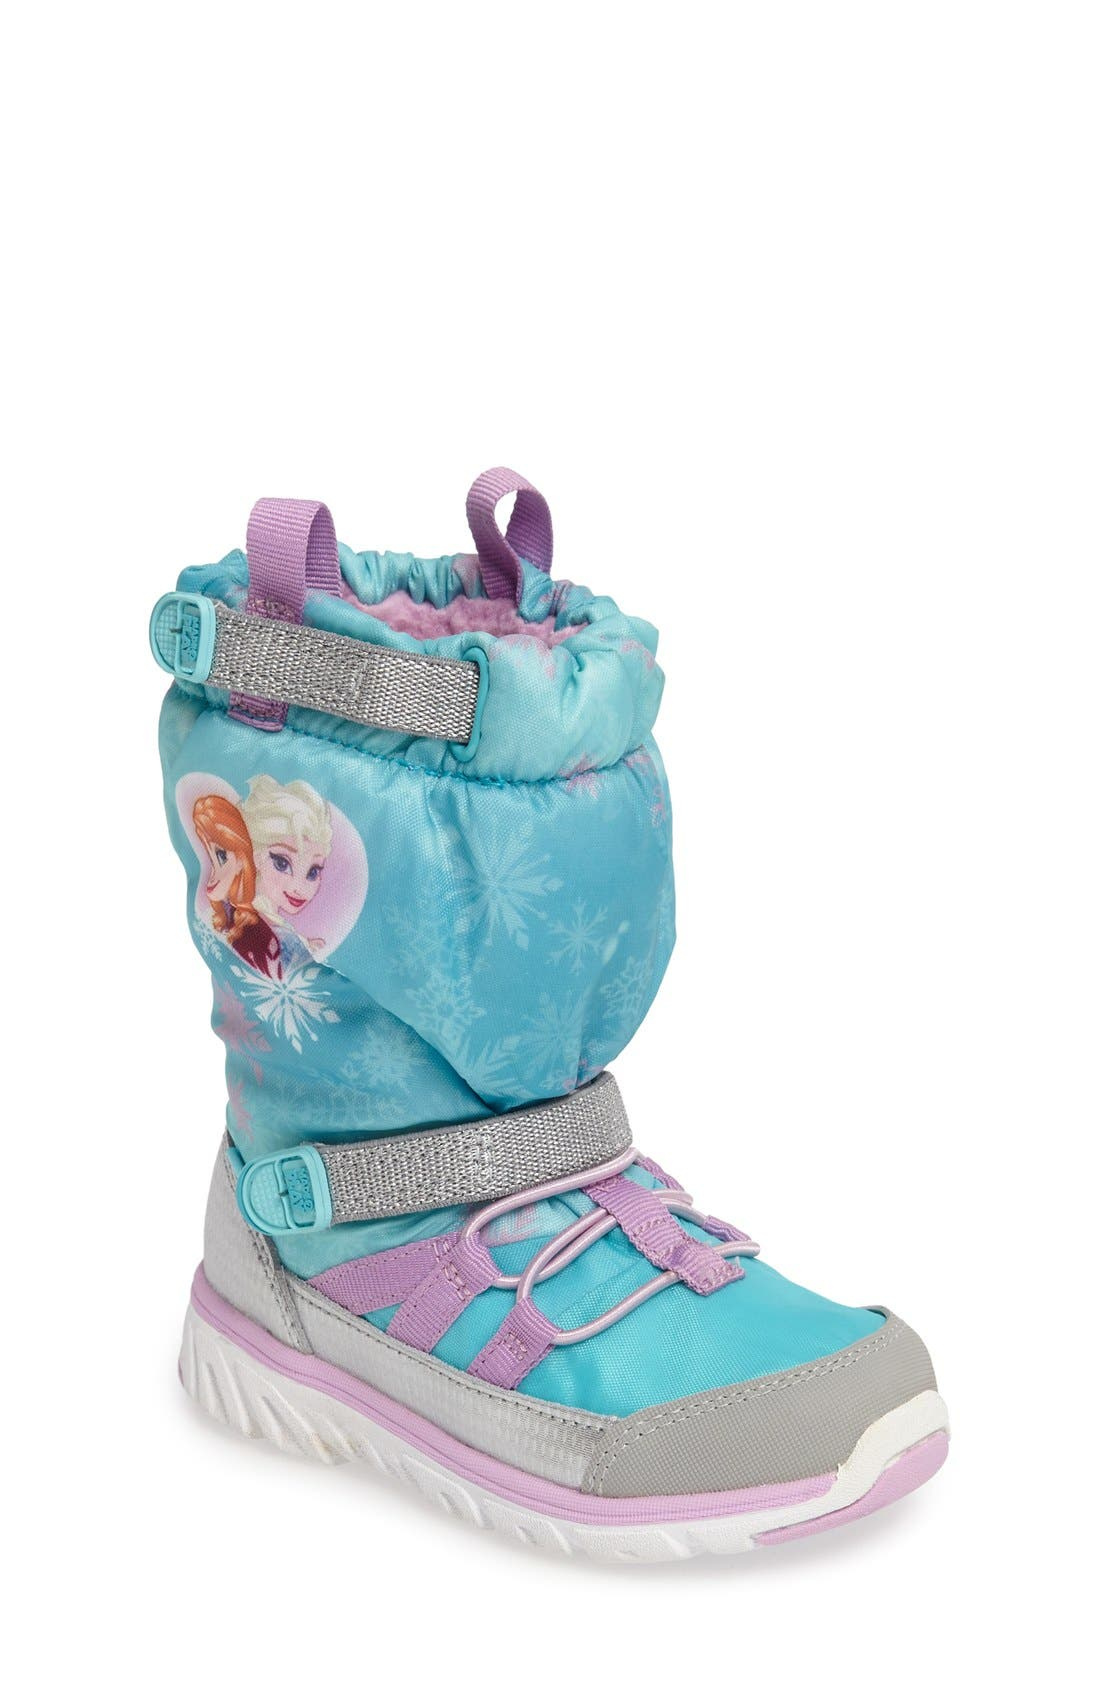 Disney<sup>®</sup> Frozen Made2Play Sneaker Boot,                         Main,                         color, 452